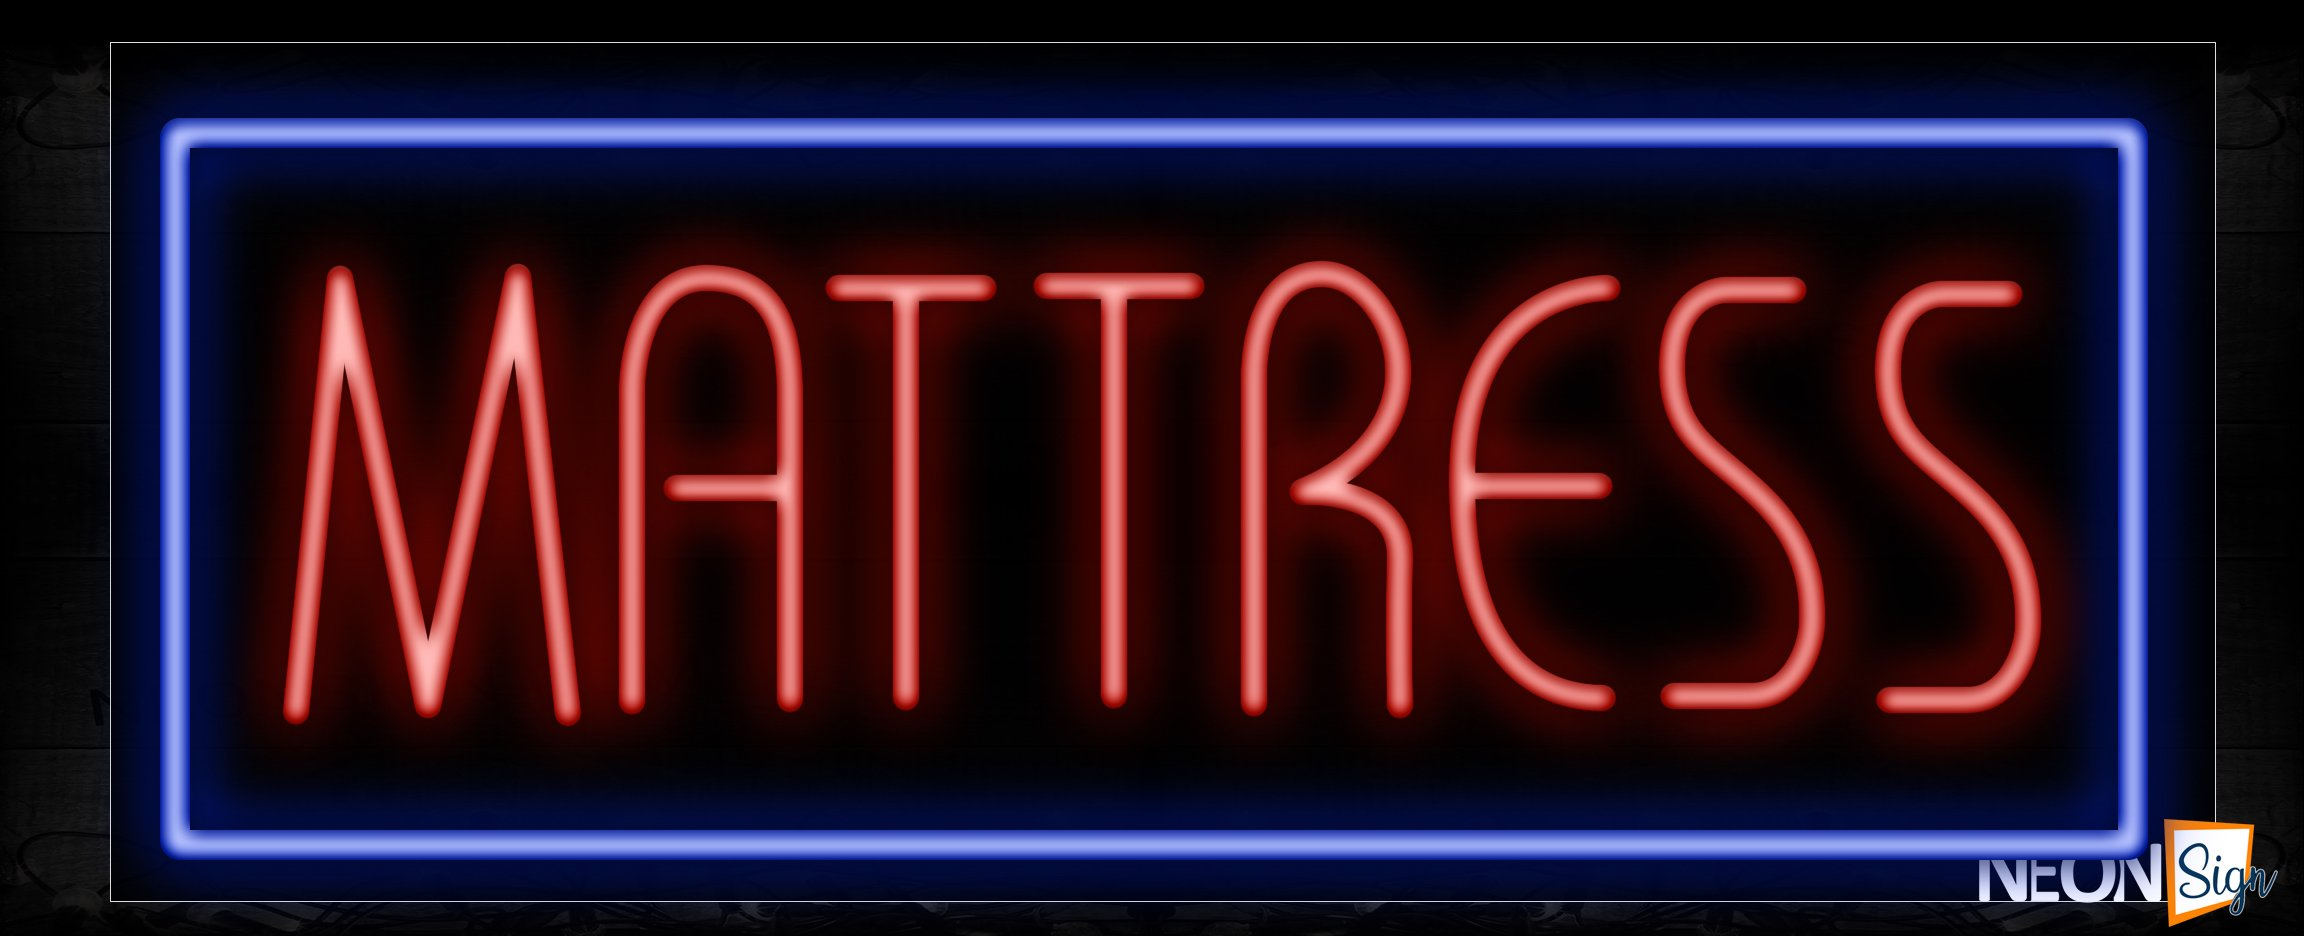 Image of 10260 Mattress in red with blue border Neon Sign_13x32 Black Backing